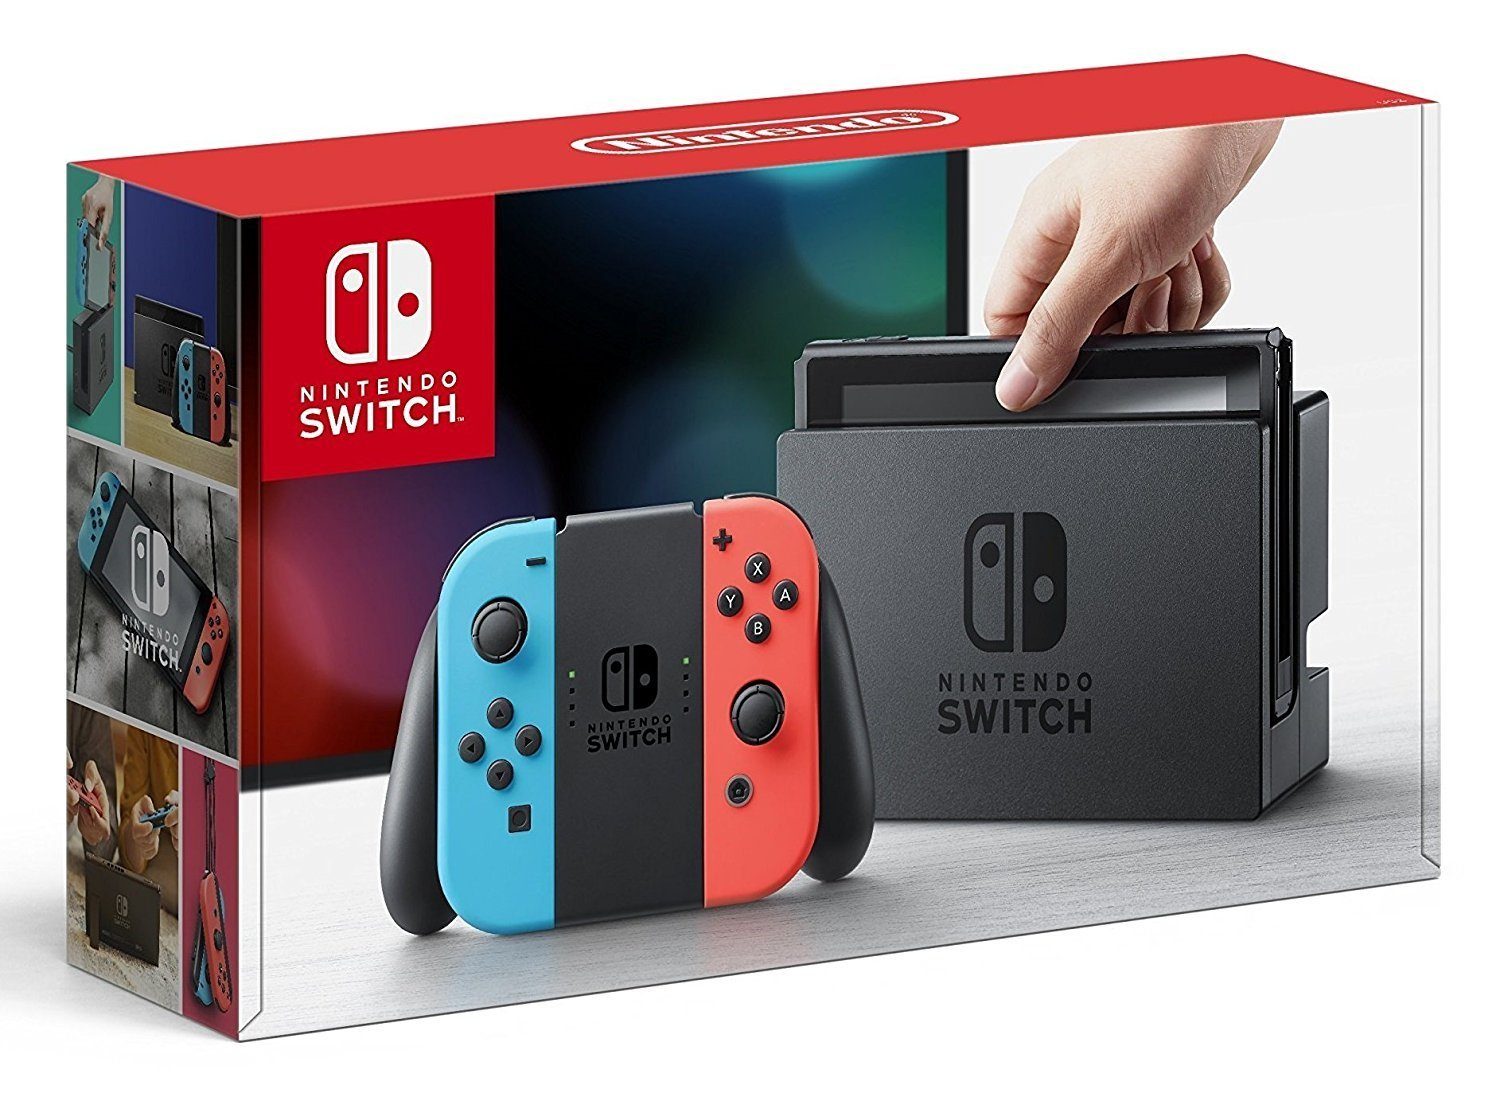 Bon plan, la Switch a 275 € sur Amazon